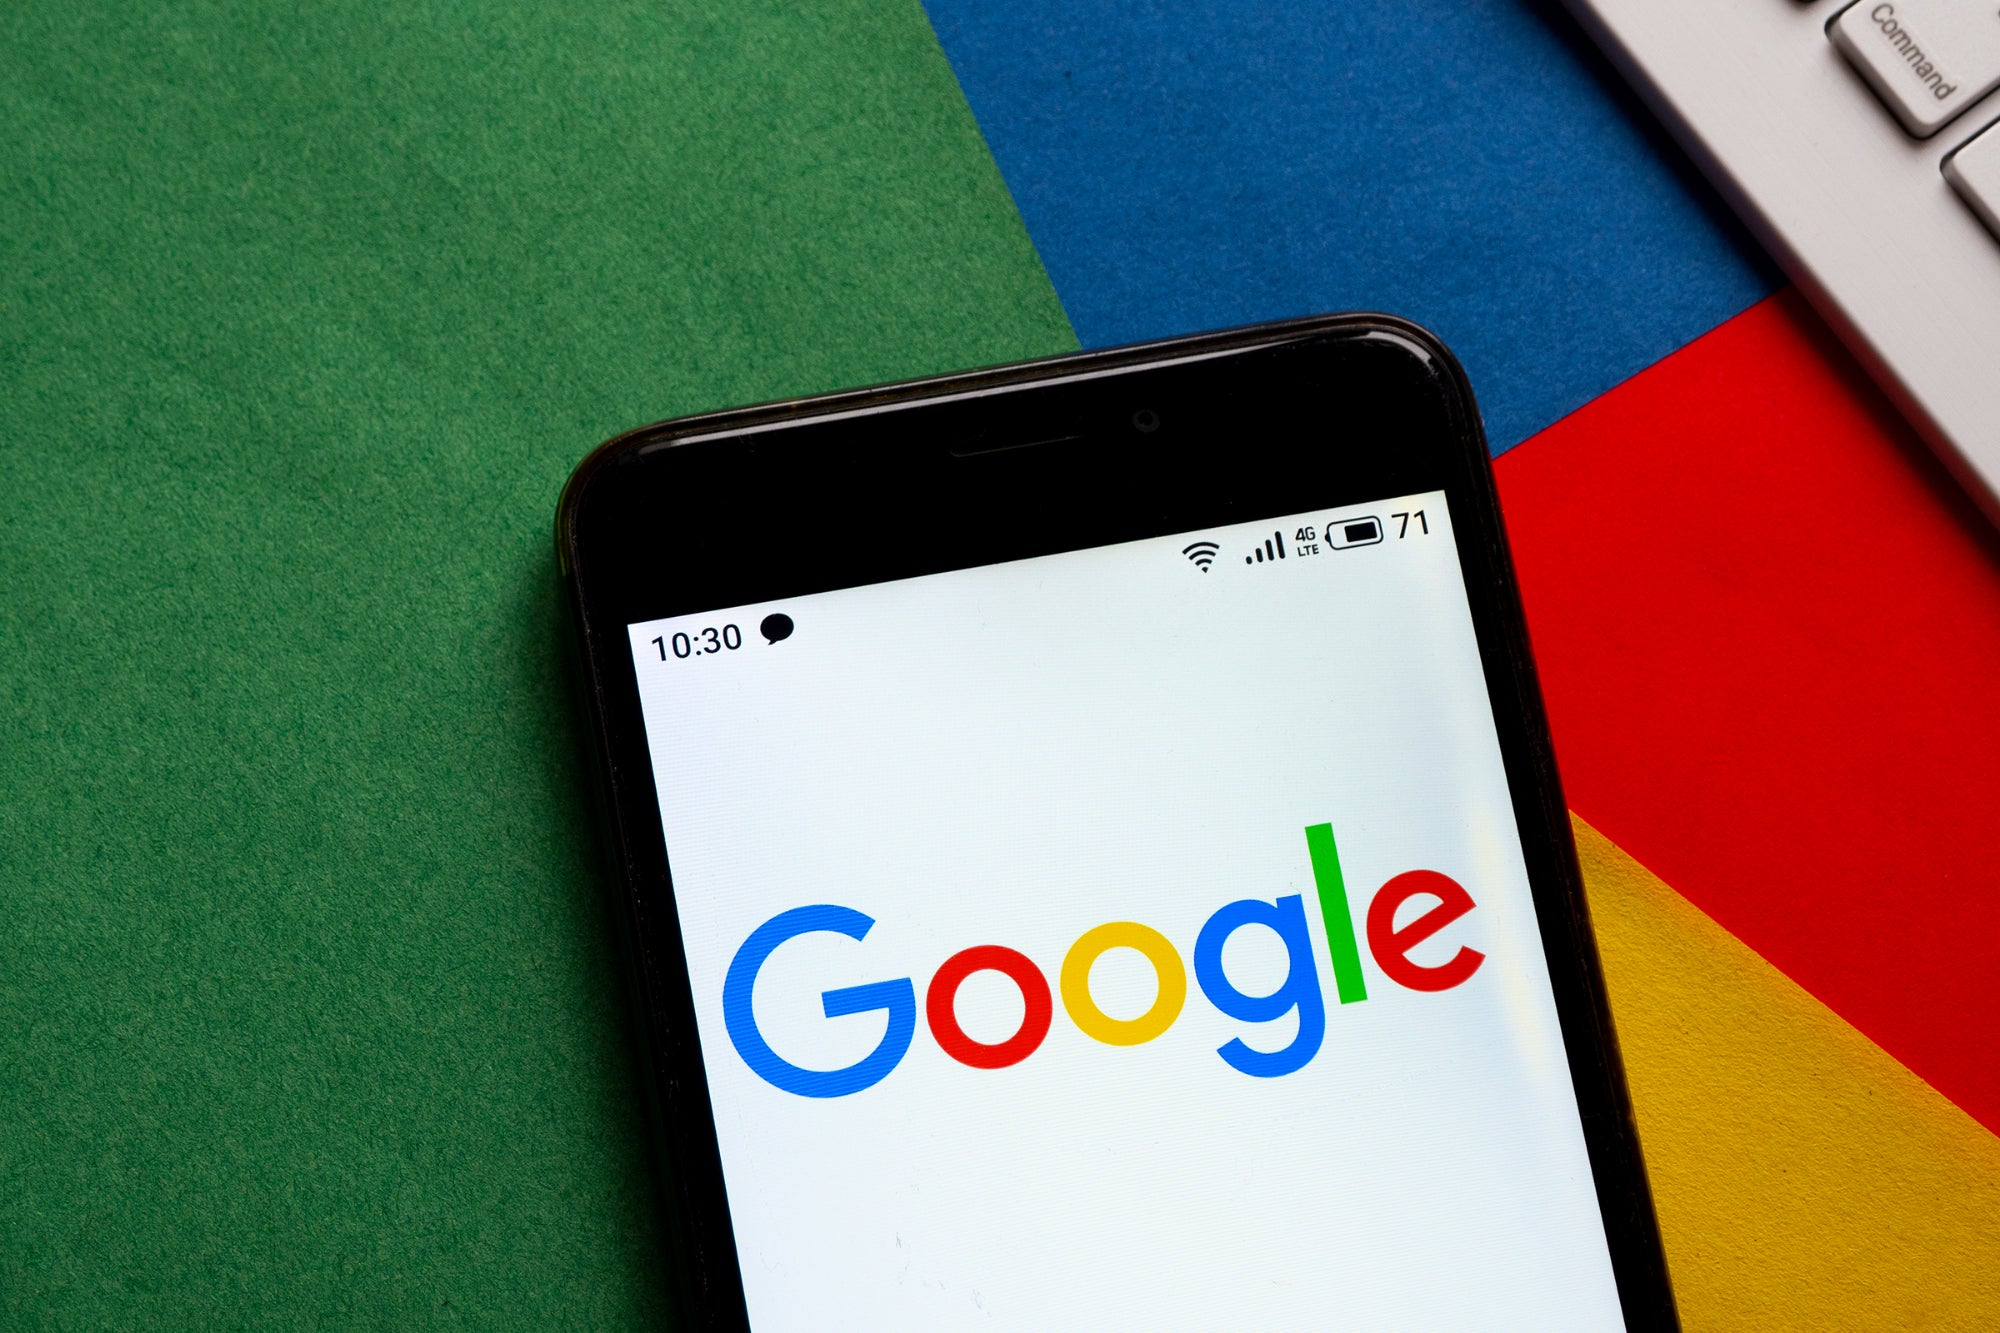 6 Tips for Acquiring More Google Reviews (and Why They Matter)